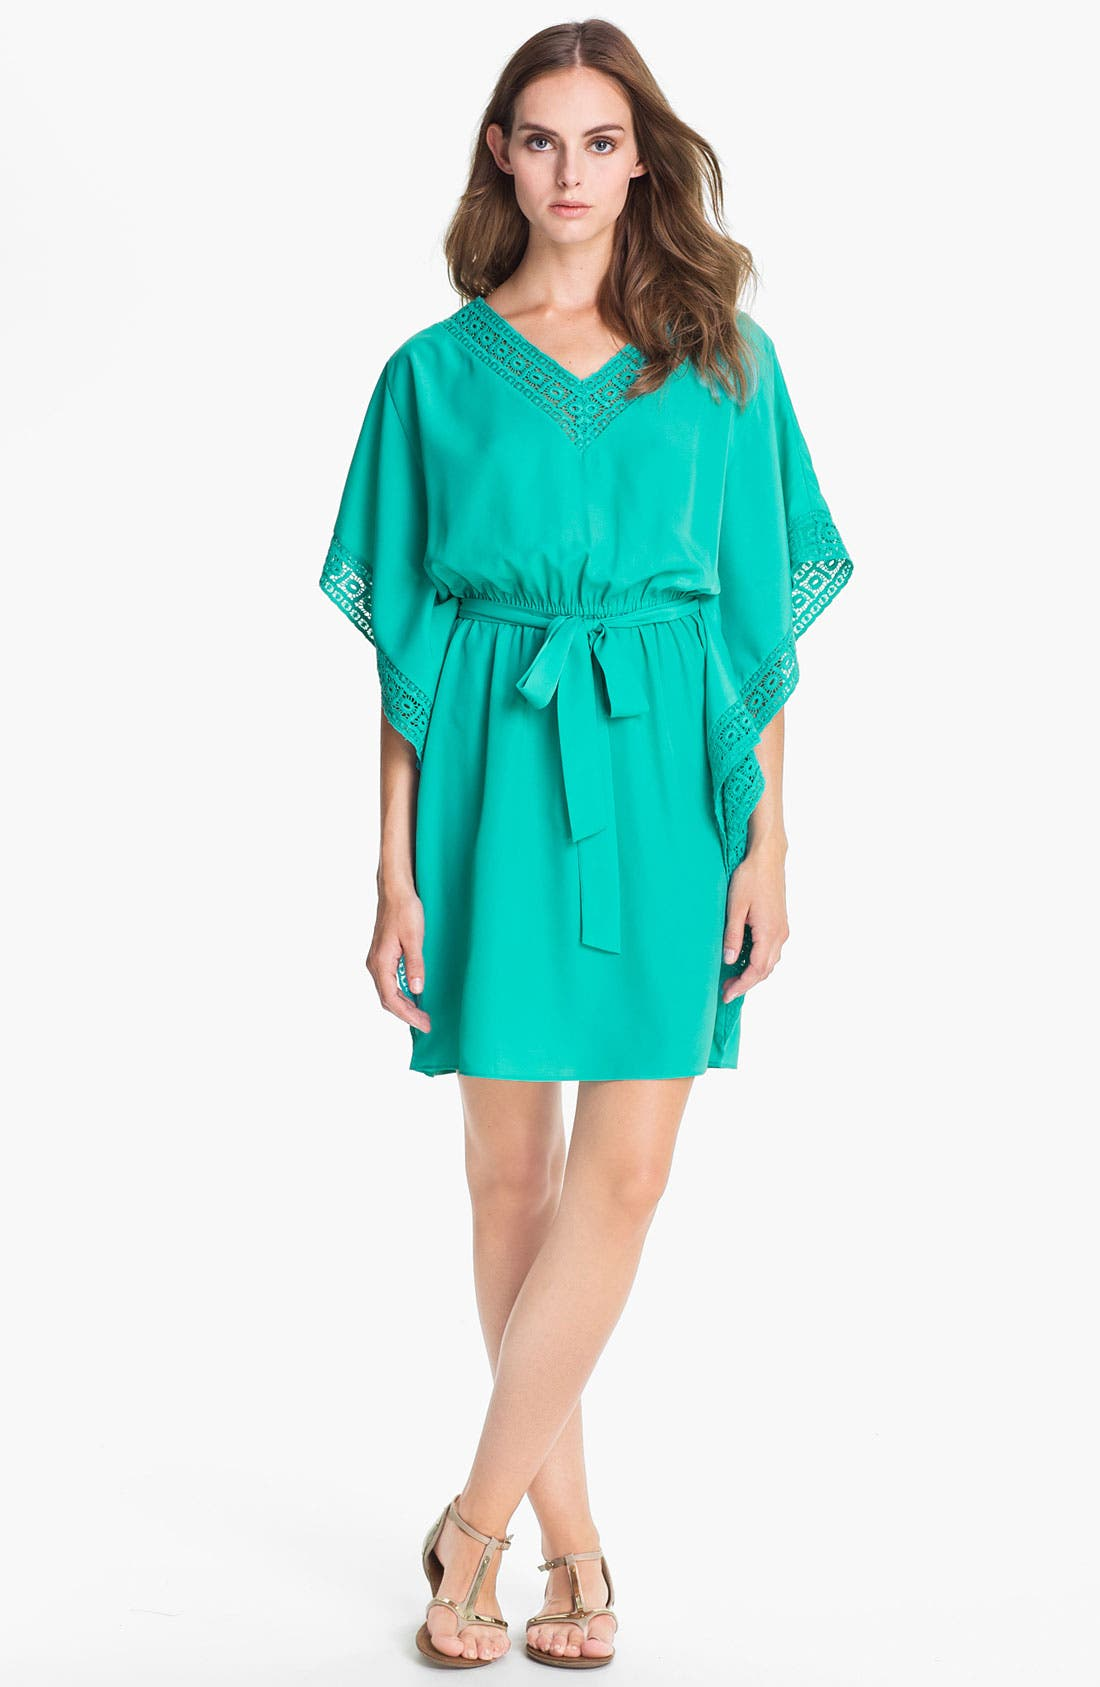 Alternate Image 1 Selected - Suzi Chin for Maggy Boutique Batwing Blouson Dress